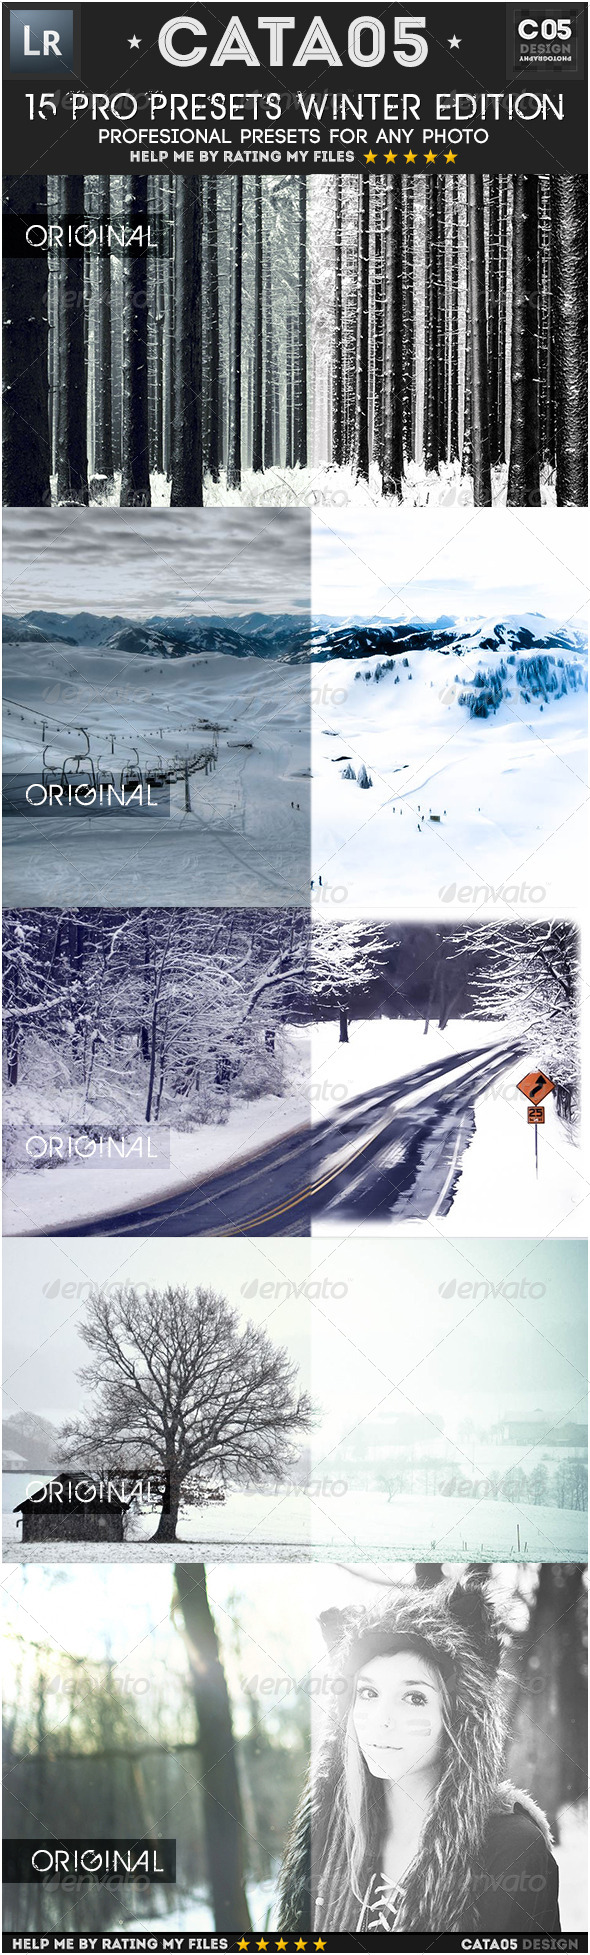 15 Pro Presets Winter Edition - Lightroom Presets Add-ons